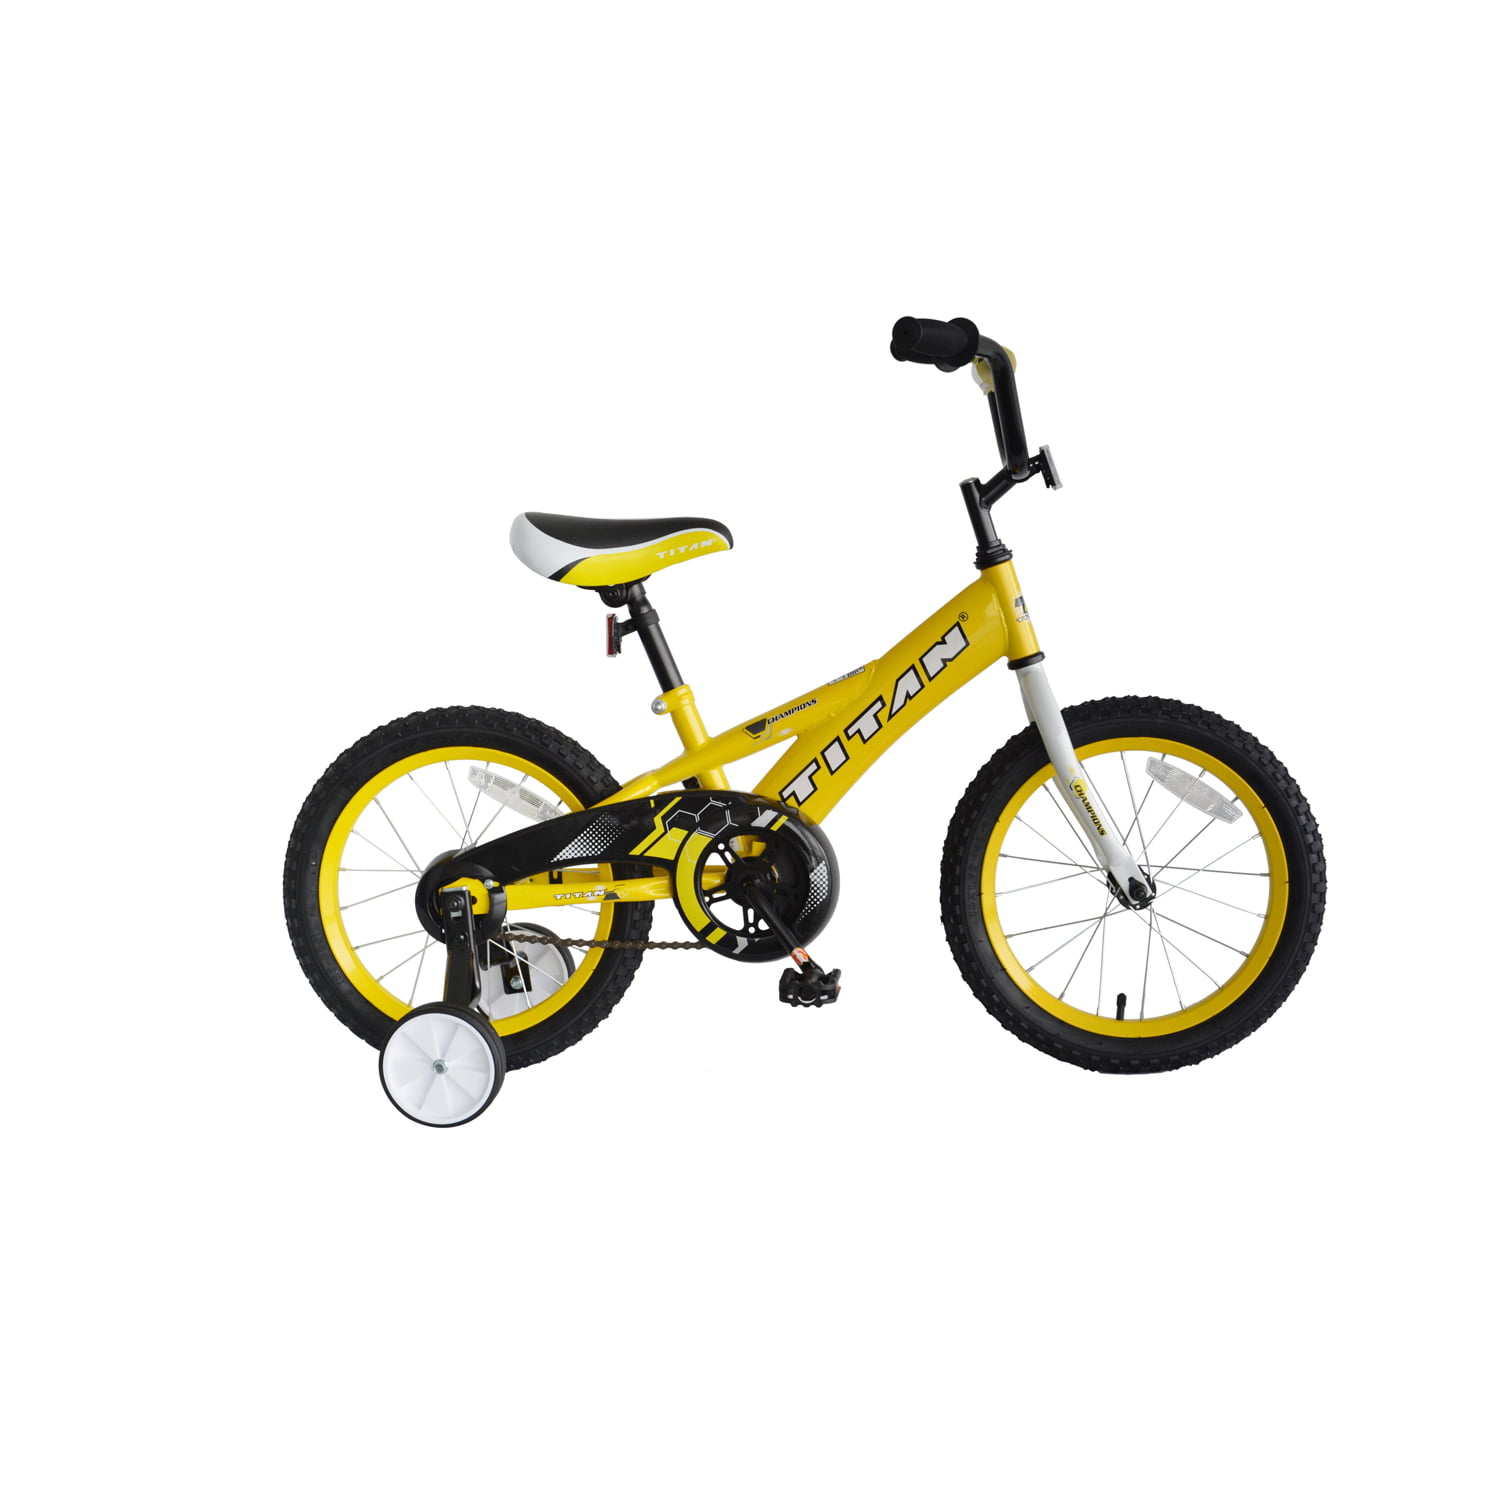 Champion Boys BMX Bike with Training Wheels, 16-Inch, Yellow by Titan